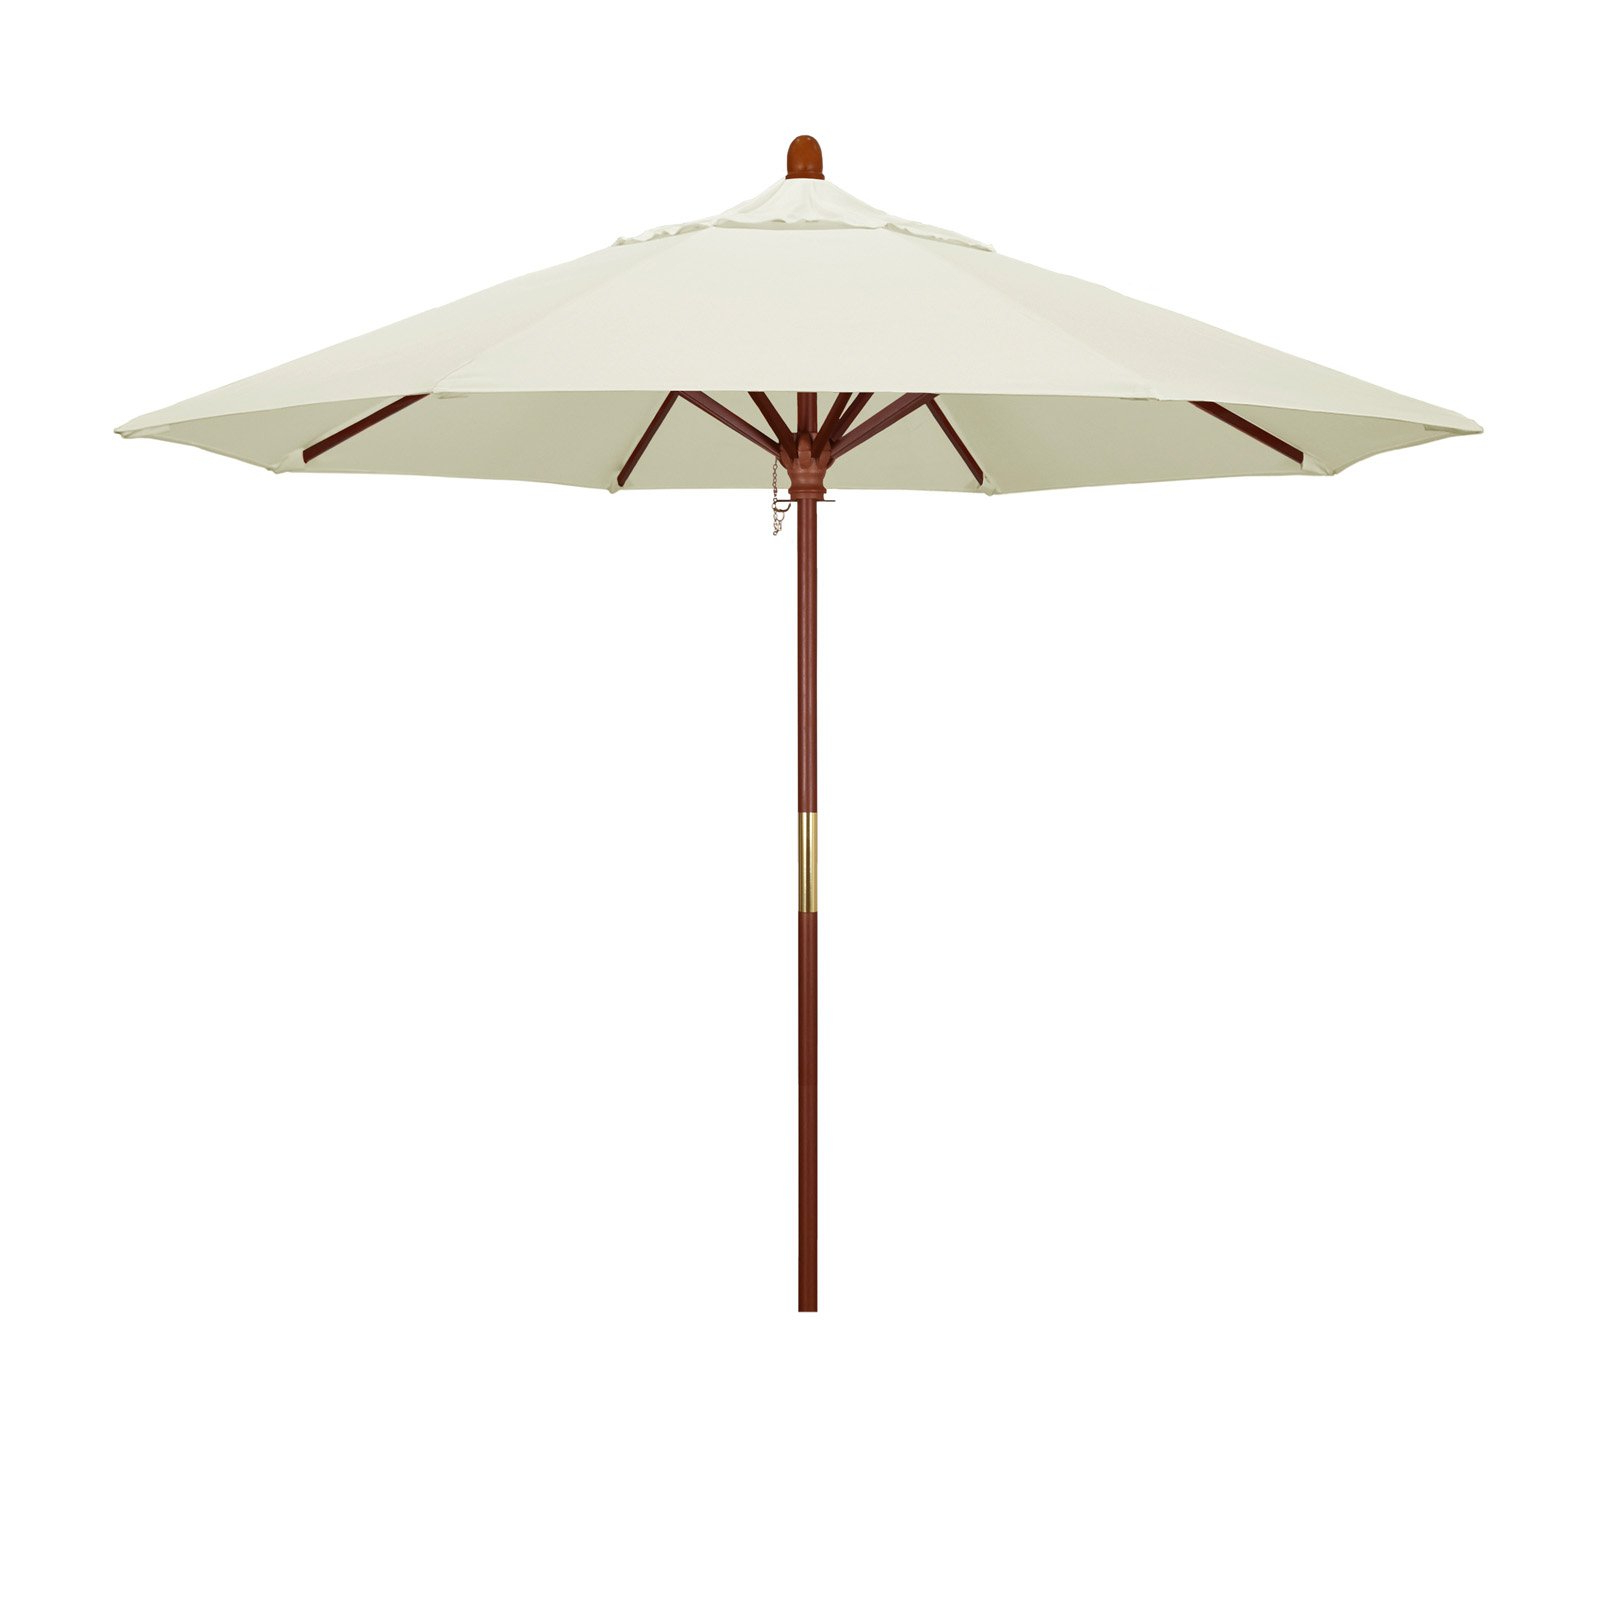 Crediton Market Umbrellas Intended For Latest California Umbrella 9 Ft (View 10 of 20)